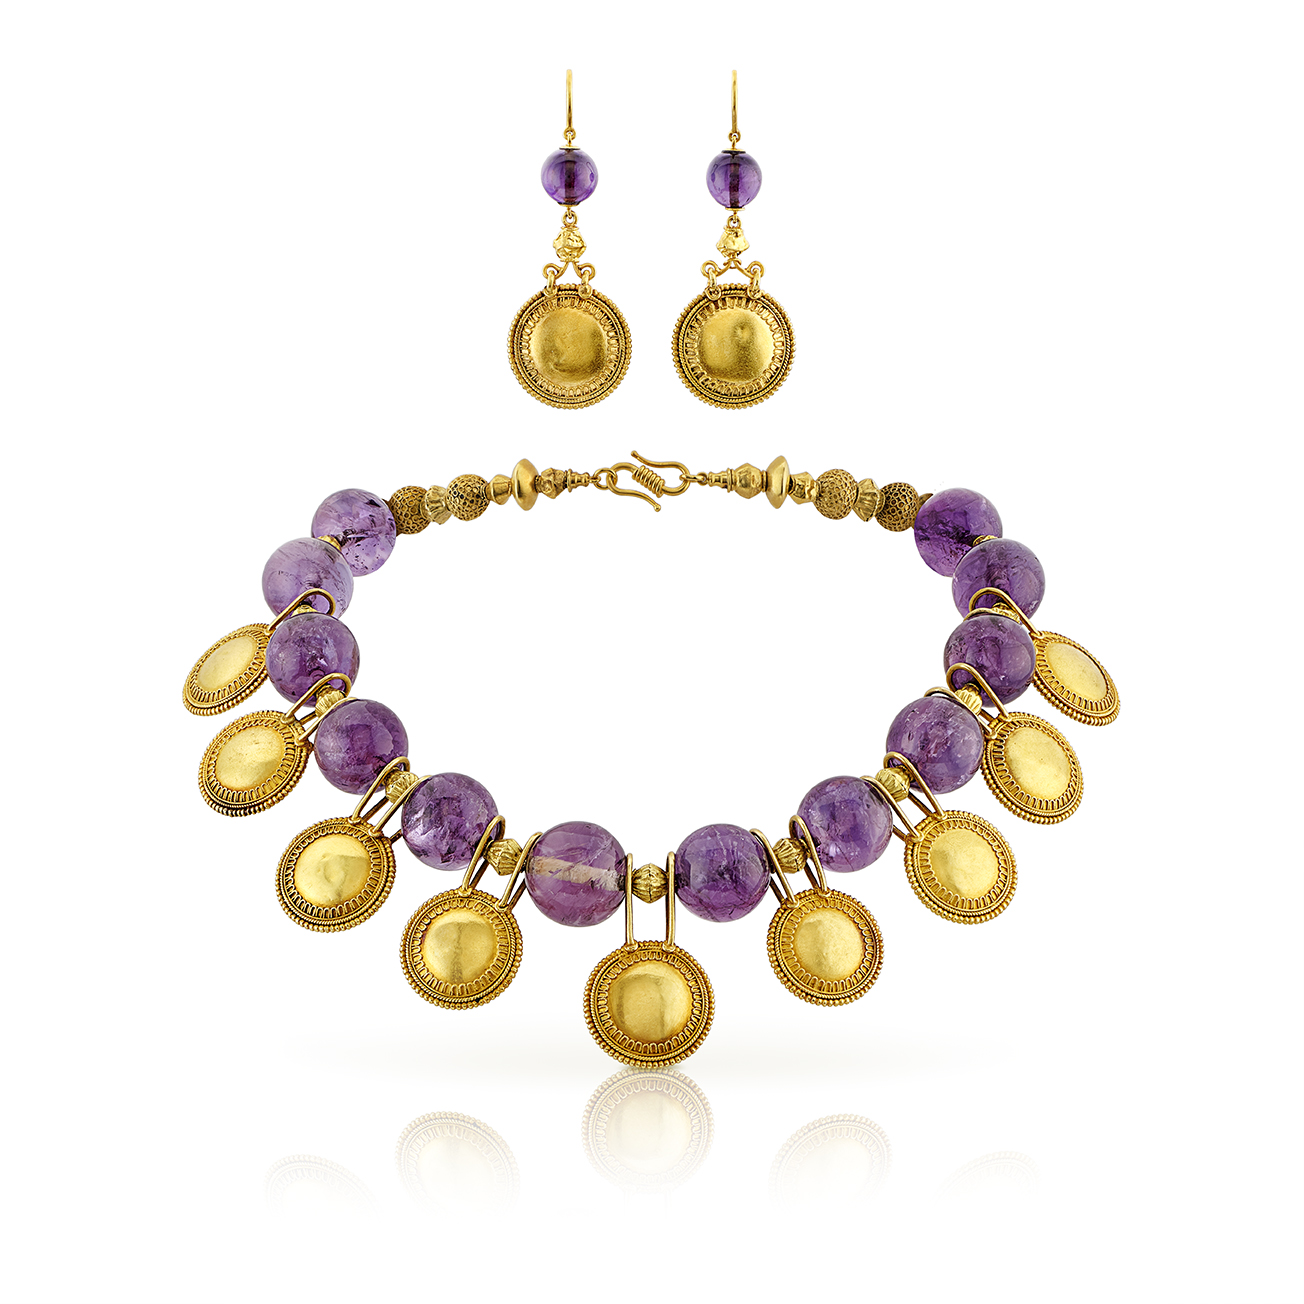 Castellani Necklace and earrings